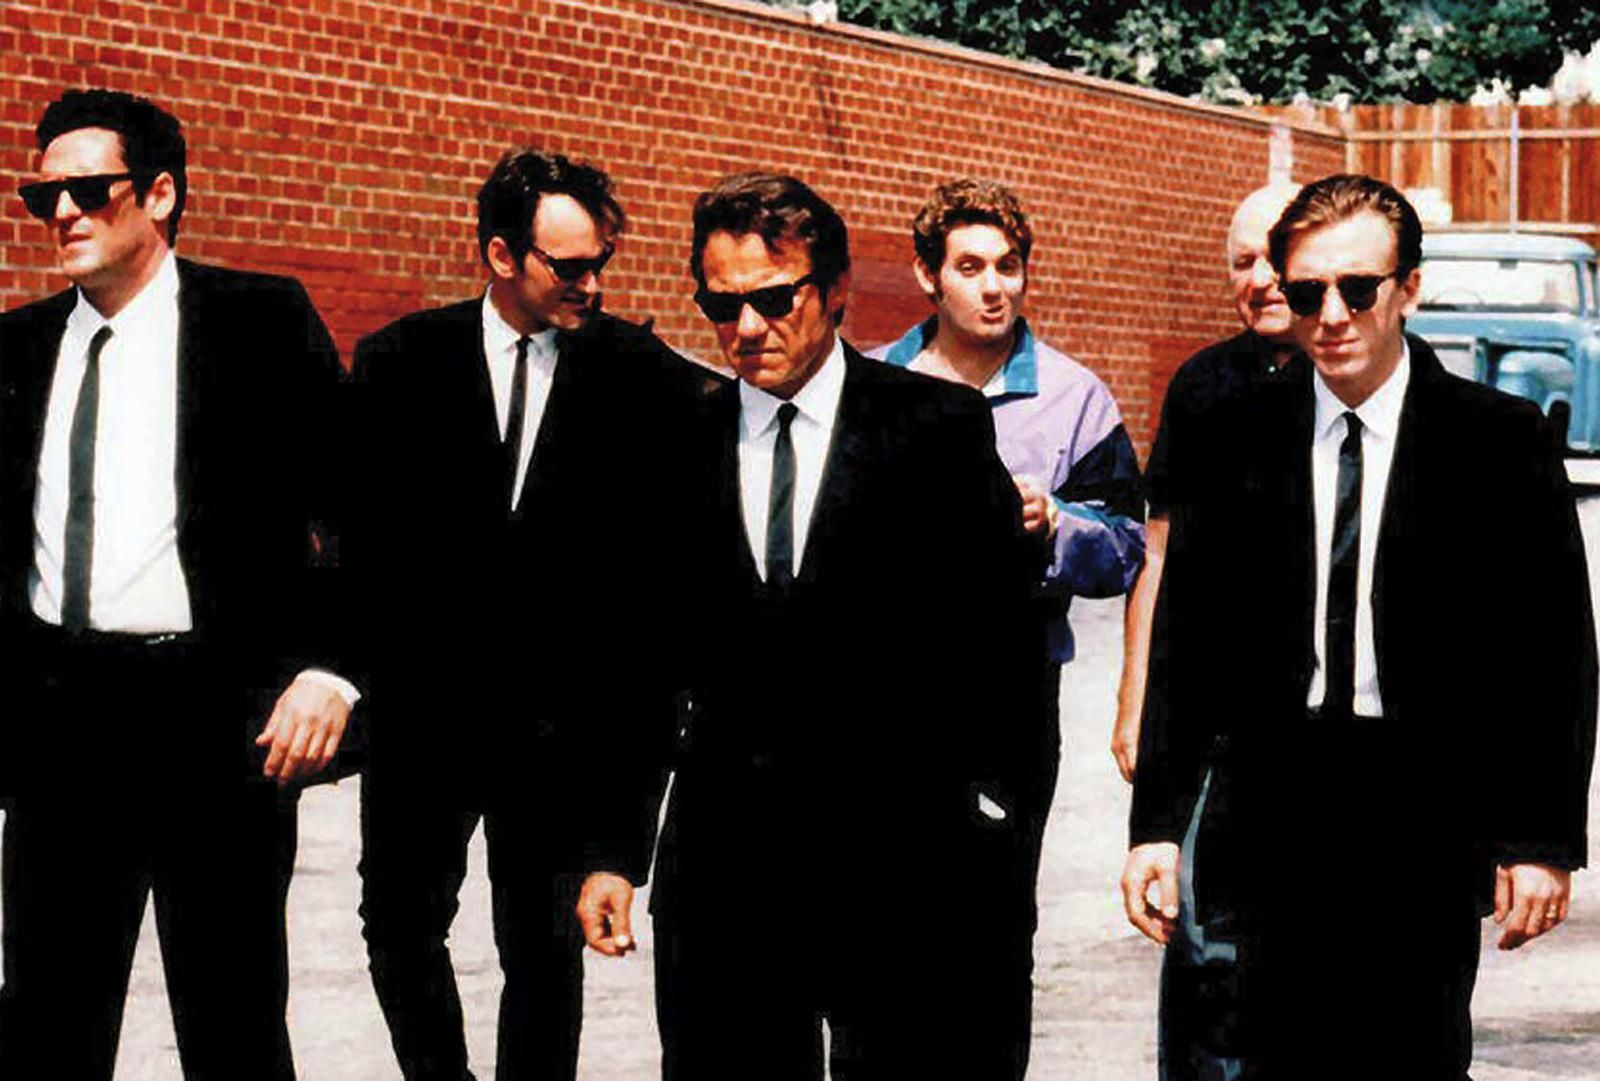 4. Reservoir Dogs